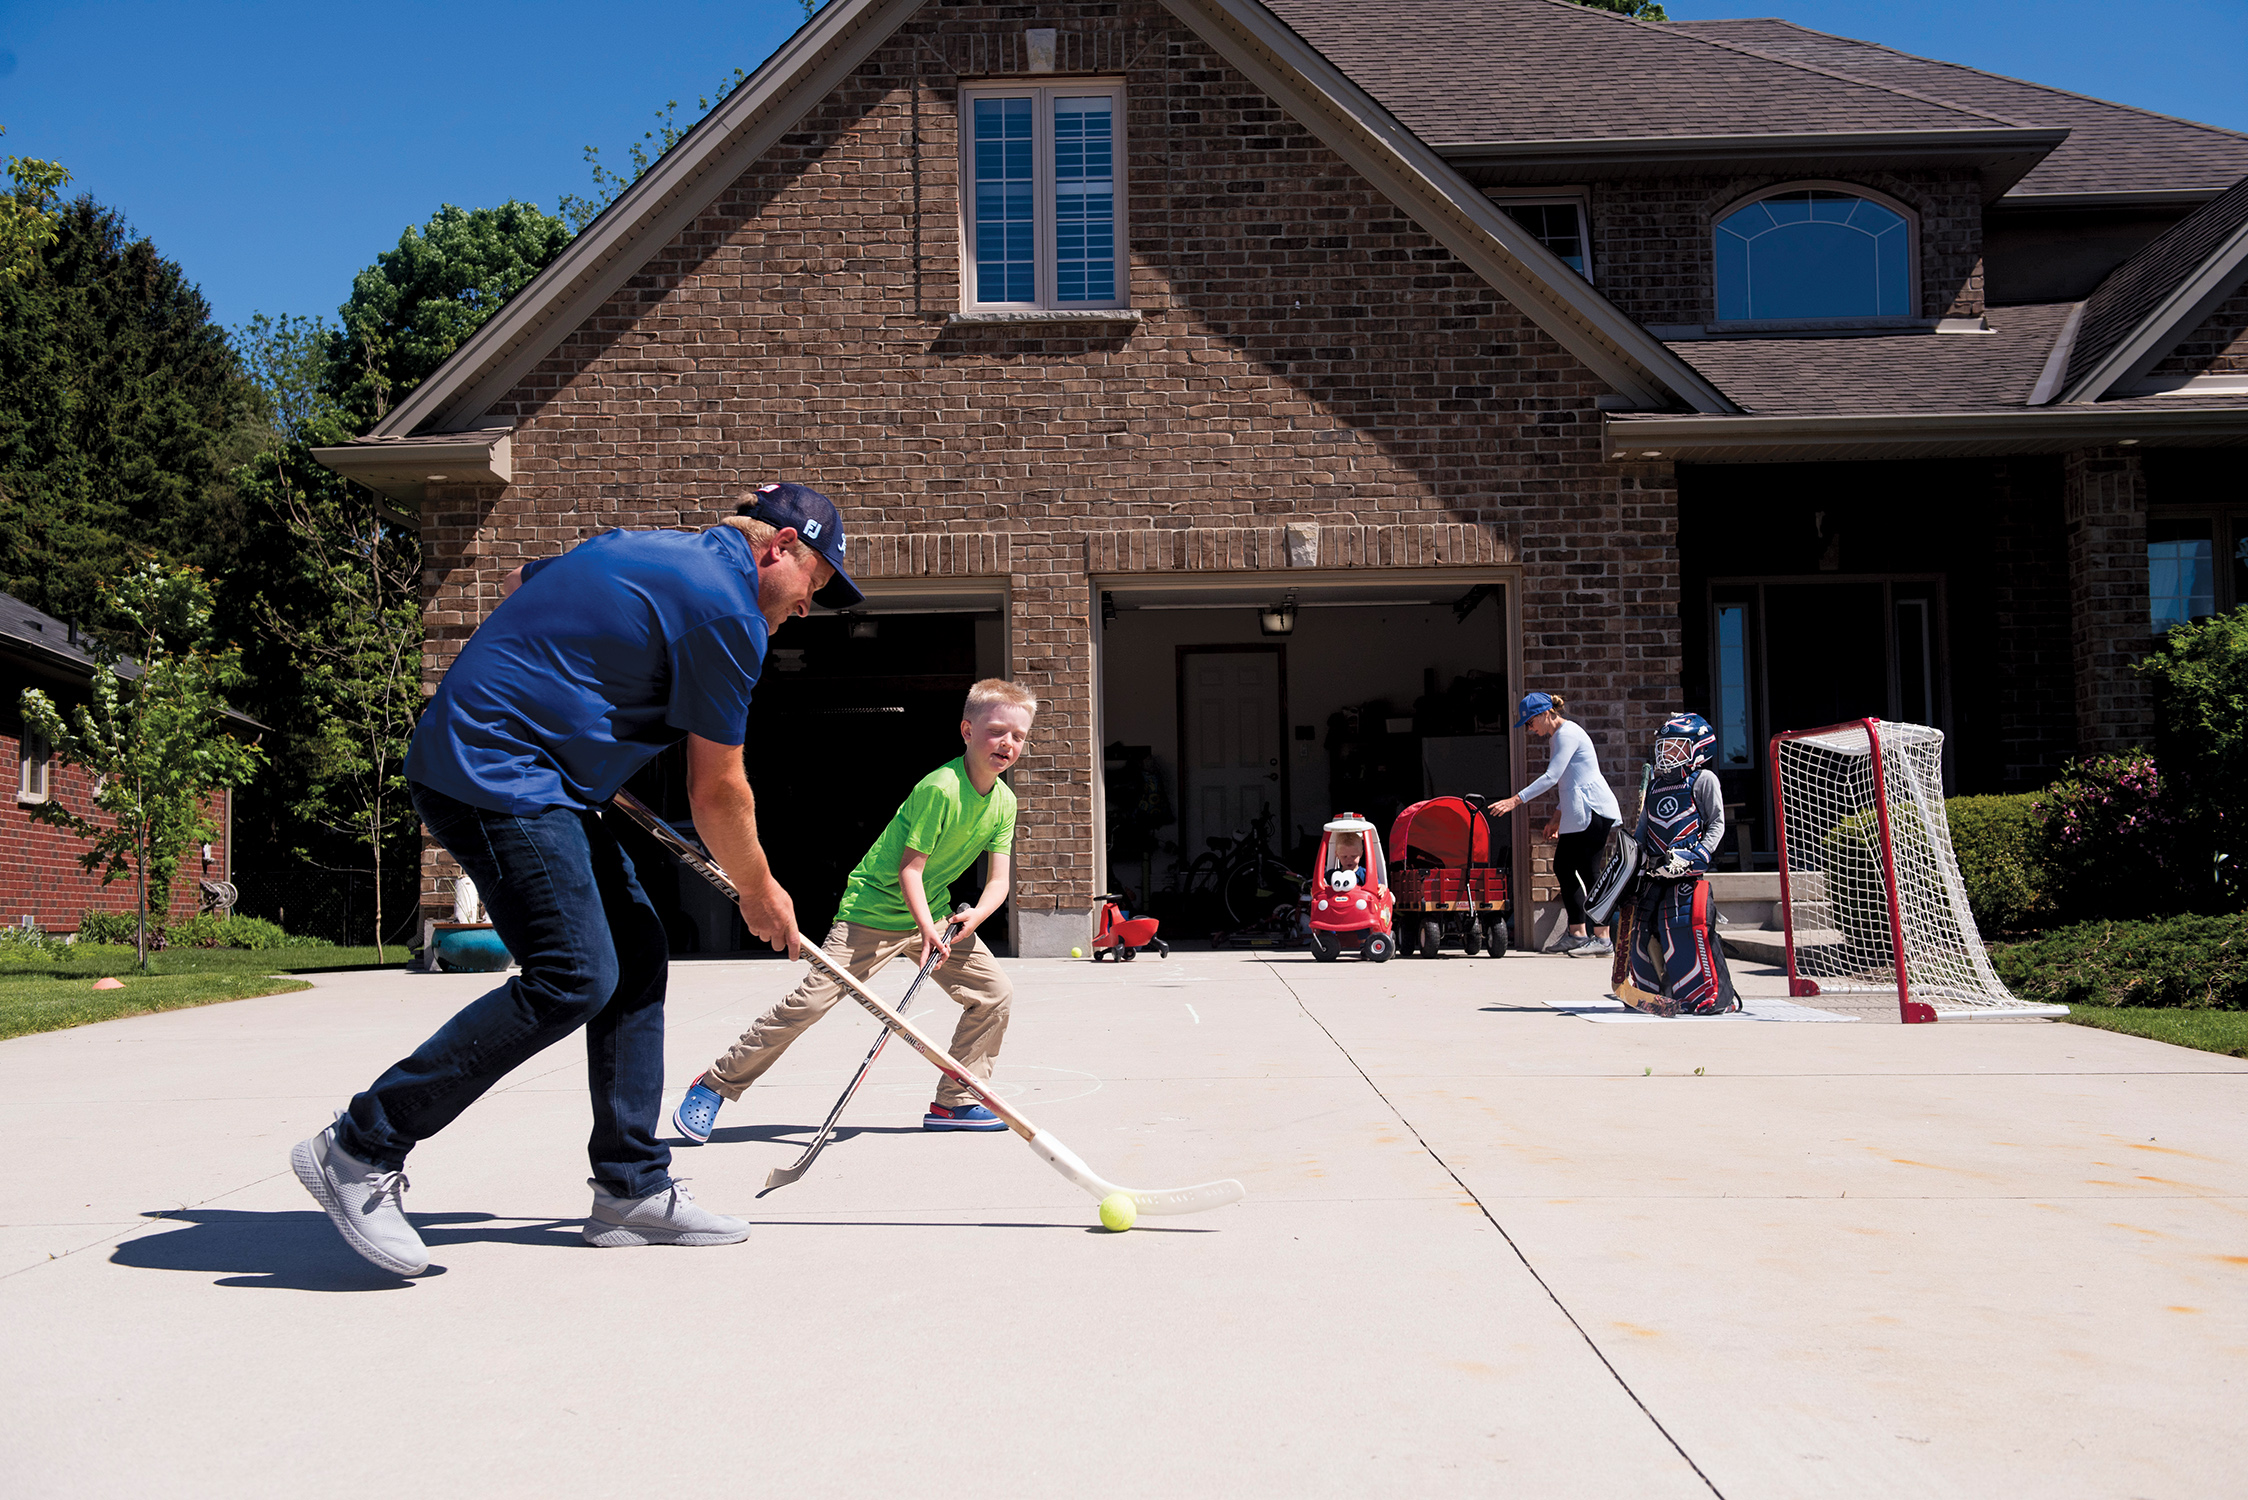 Neil Miller plays hockey with his son Joshua (Photograph by Marta Iwanek)